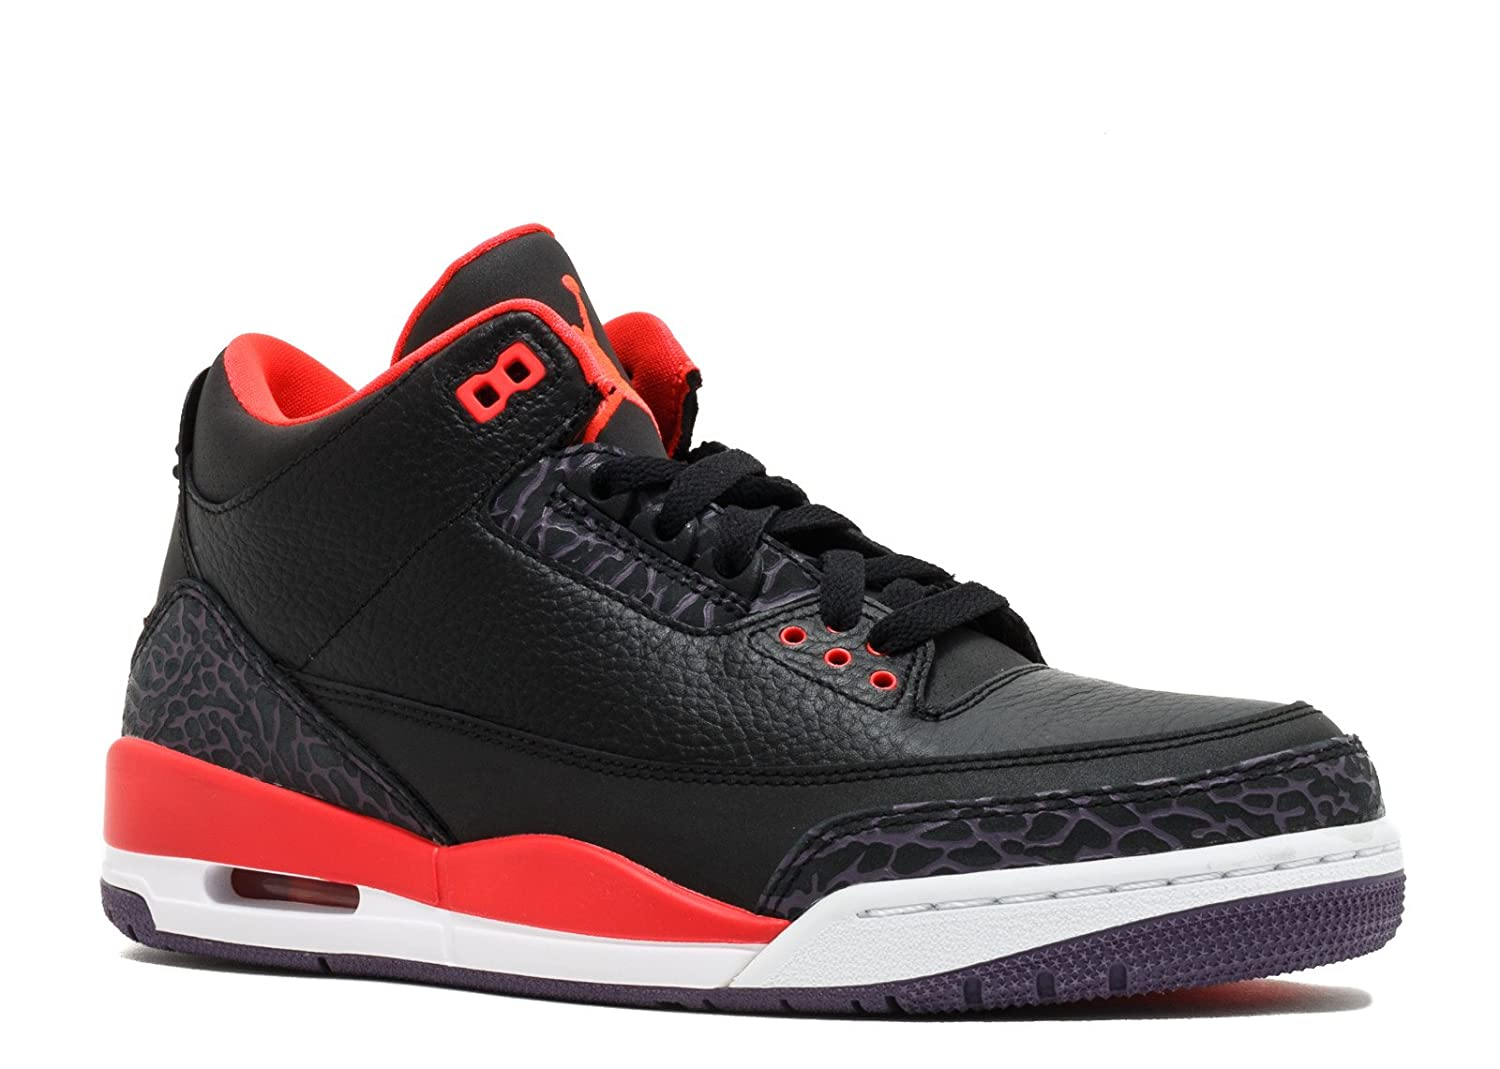 new style 0afe3 ed149 Jordan Mens Nike Air Retro 3 BRED Basketball Shoes Black/Bright  Crimson/Purple 136064-005 Size 12